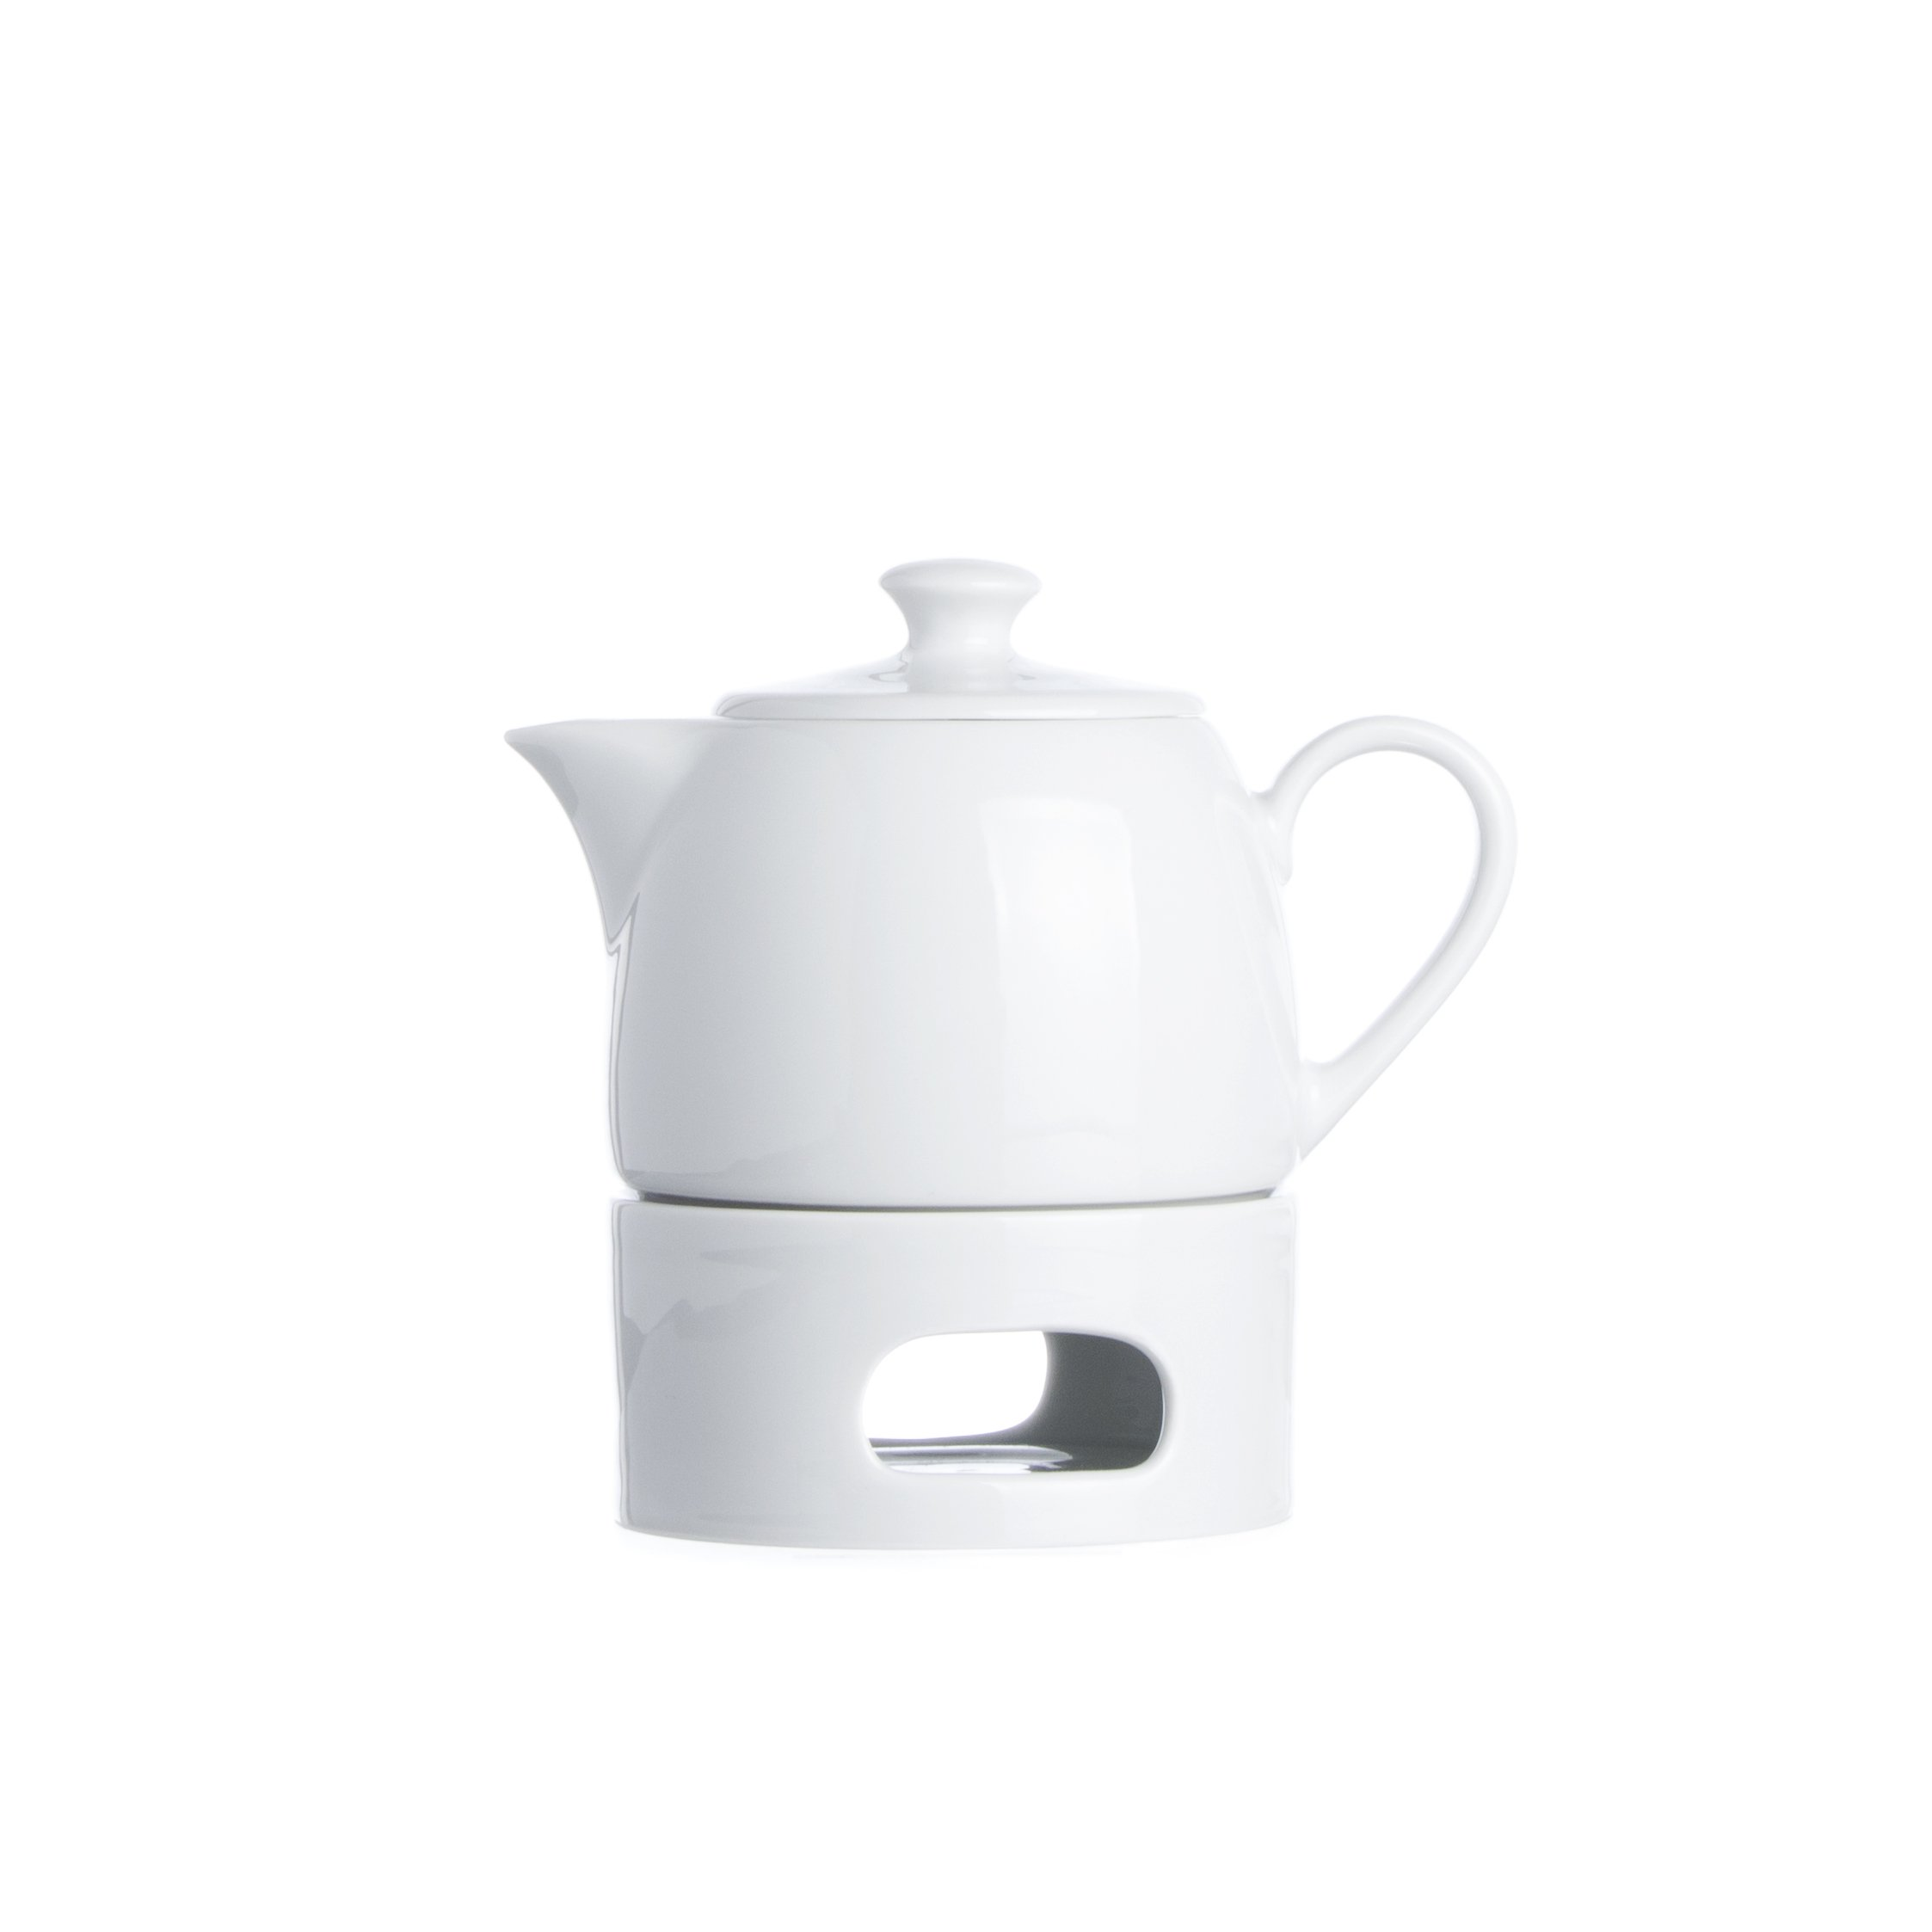 Smart And Cozy White Porcelain TEAPOT with Candle Warmer (13.5 oz), Restaurant&Hotel Quality